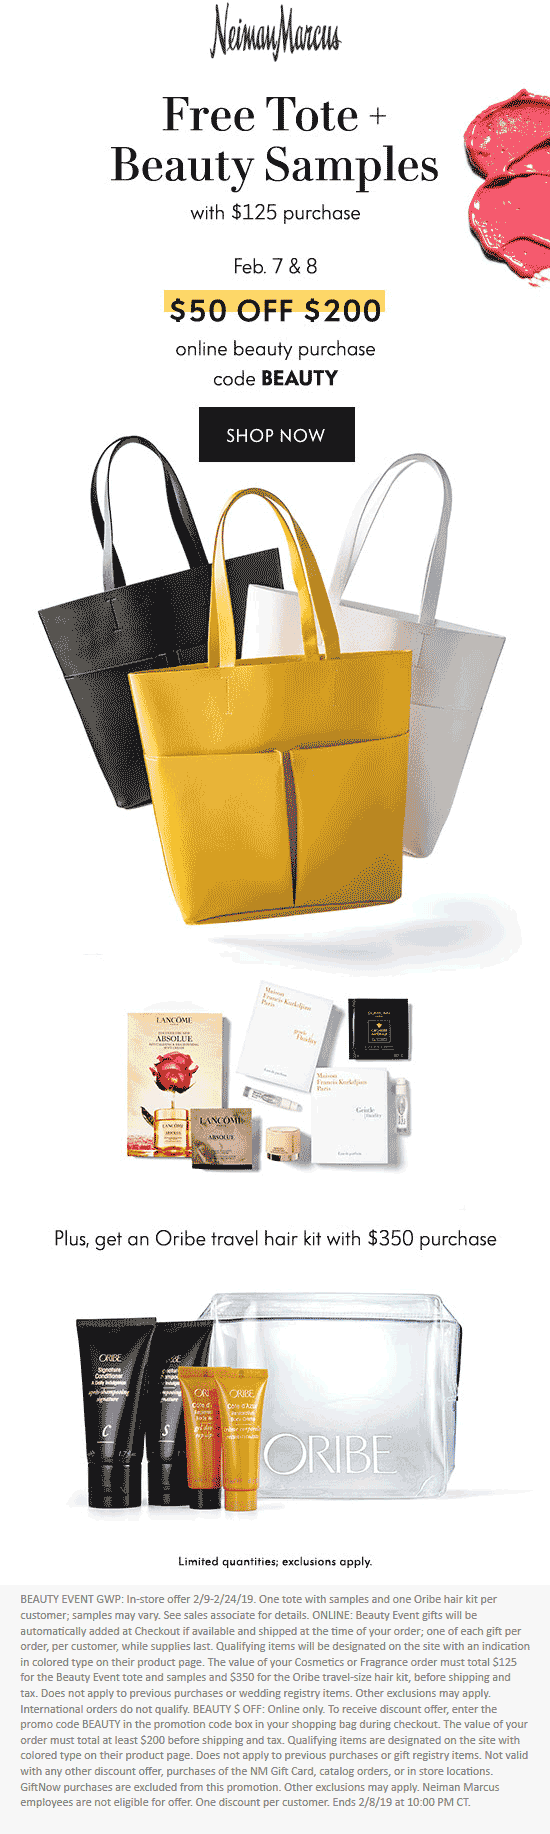 Neiman Marcus Coupon March 2019 Free tote & more at Neiman Marcus, or online via promo code BEAUTY